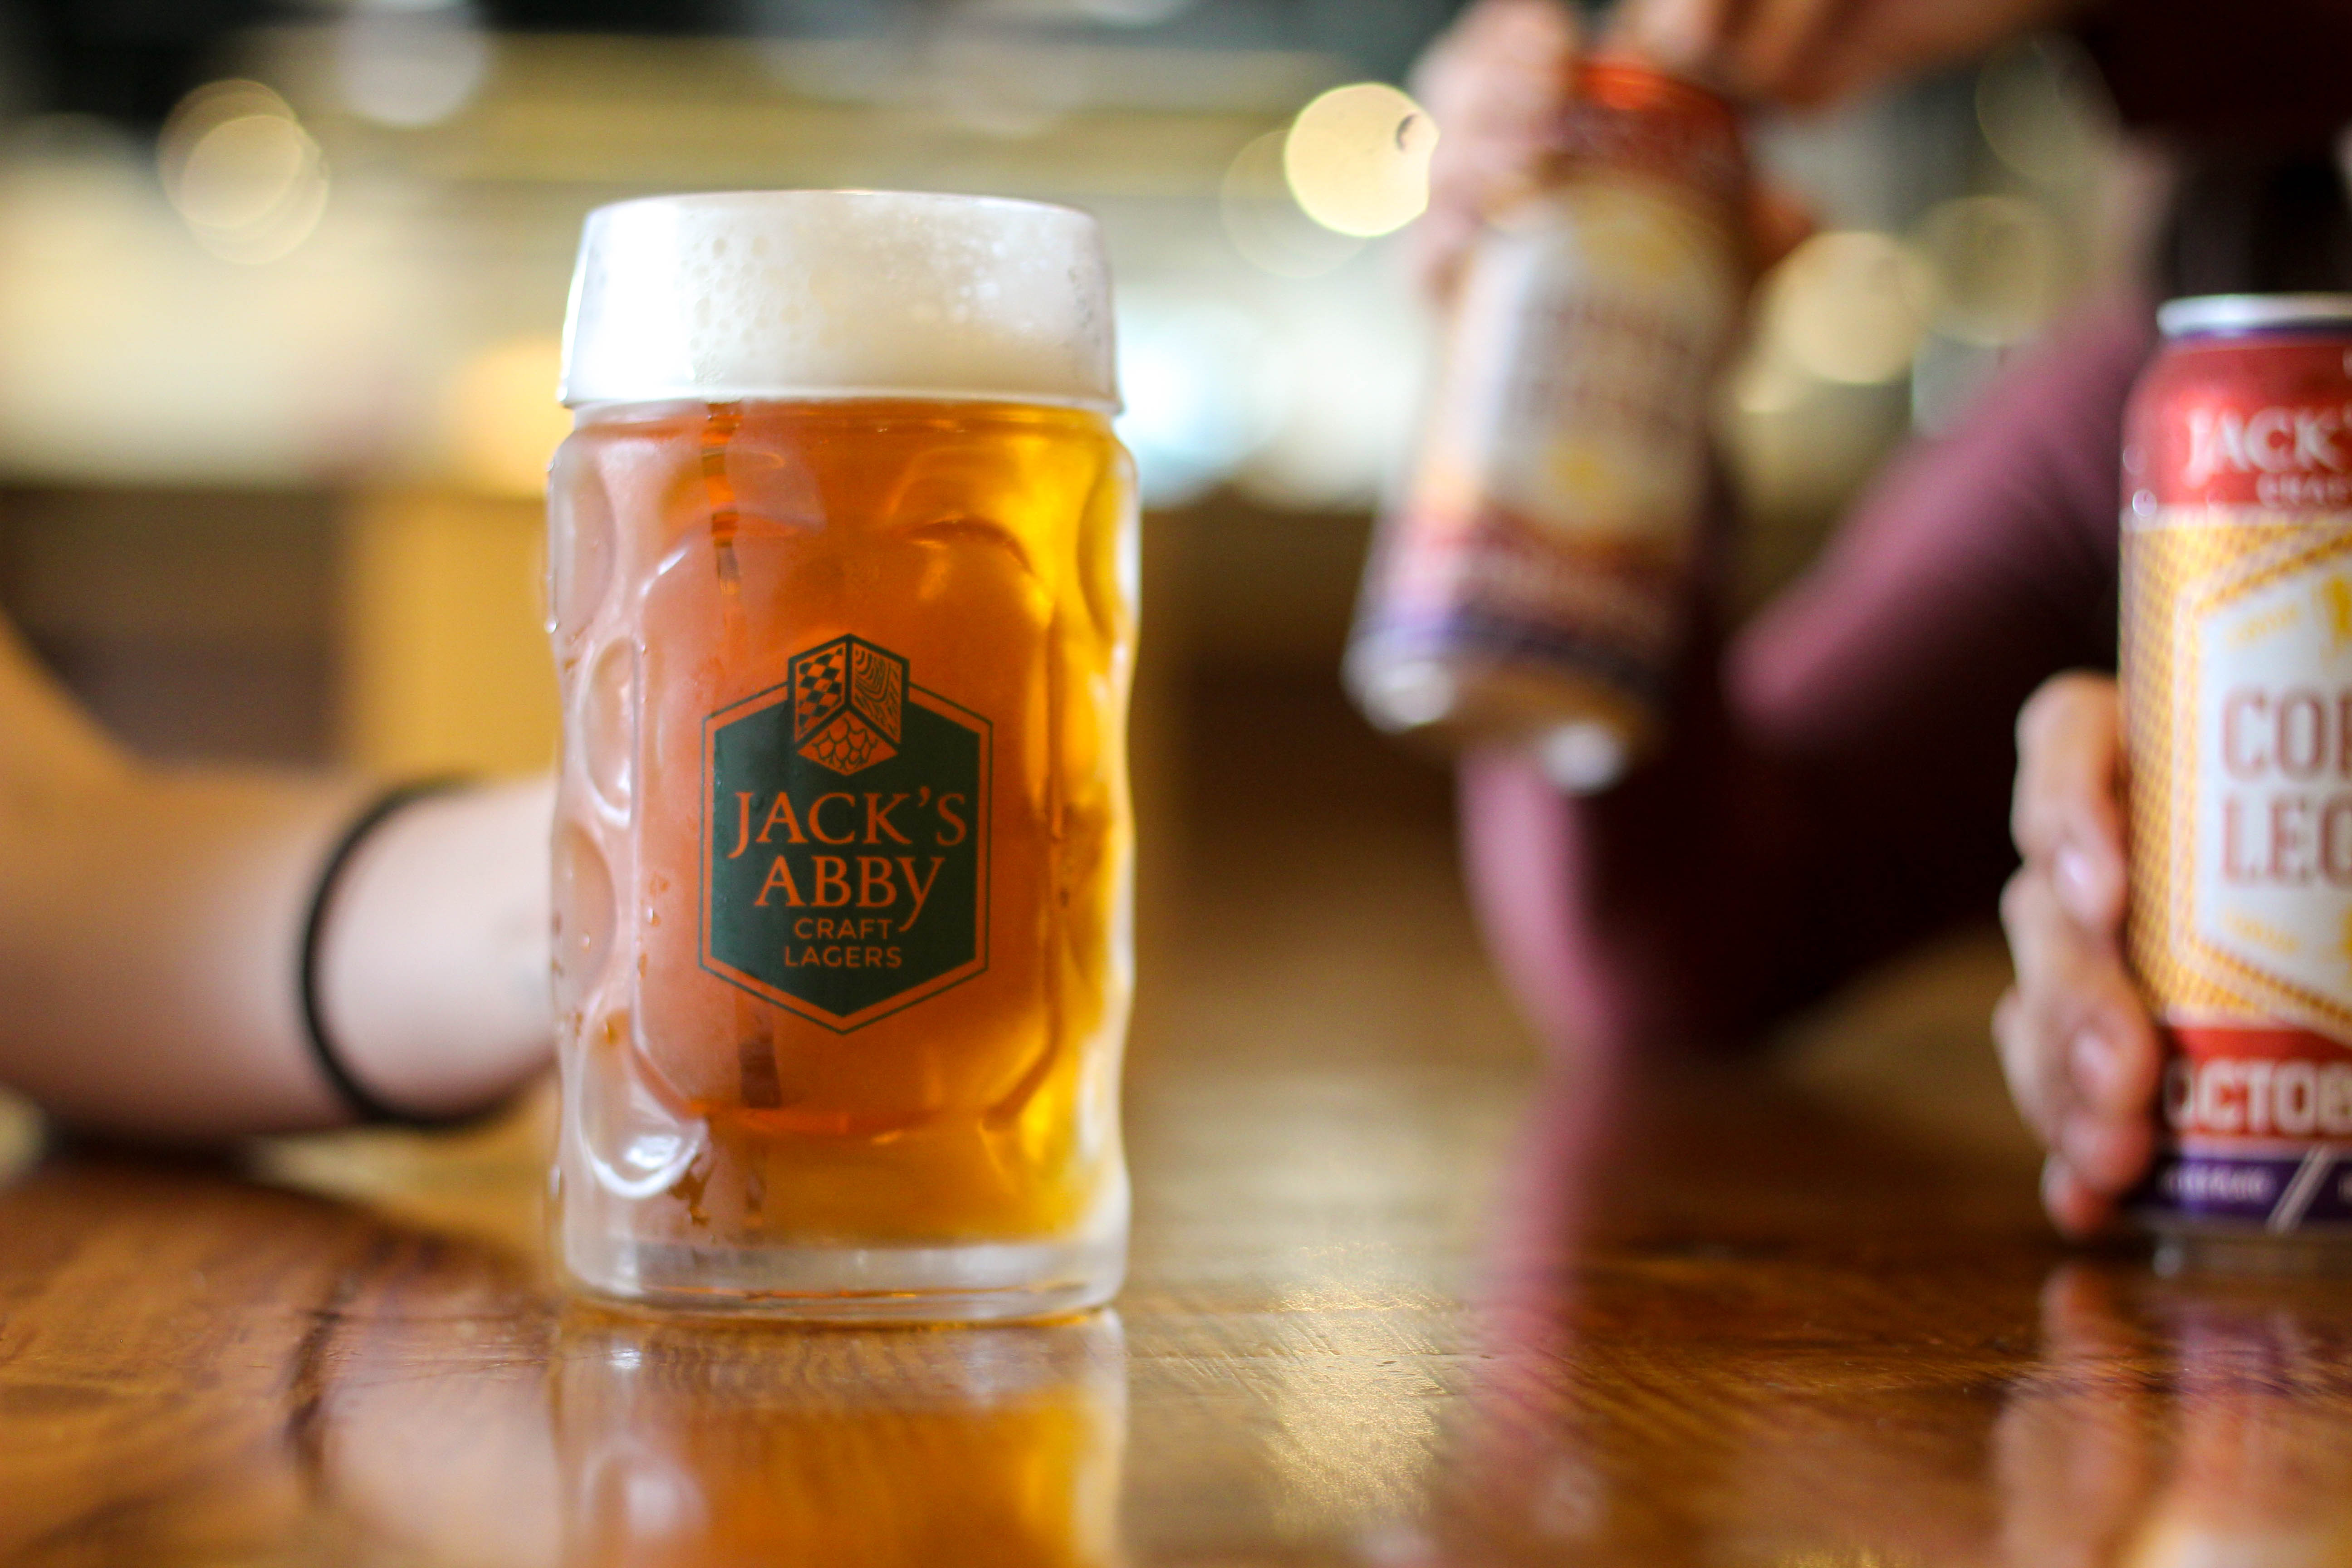 Jack's Abby Copper Legend, brewed for Oktoberfest.